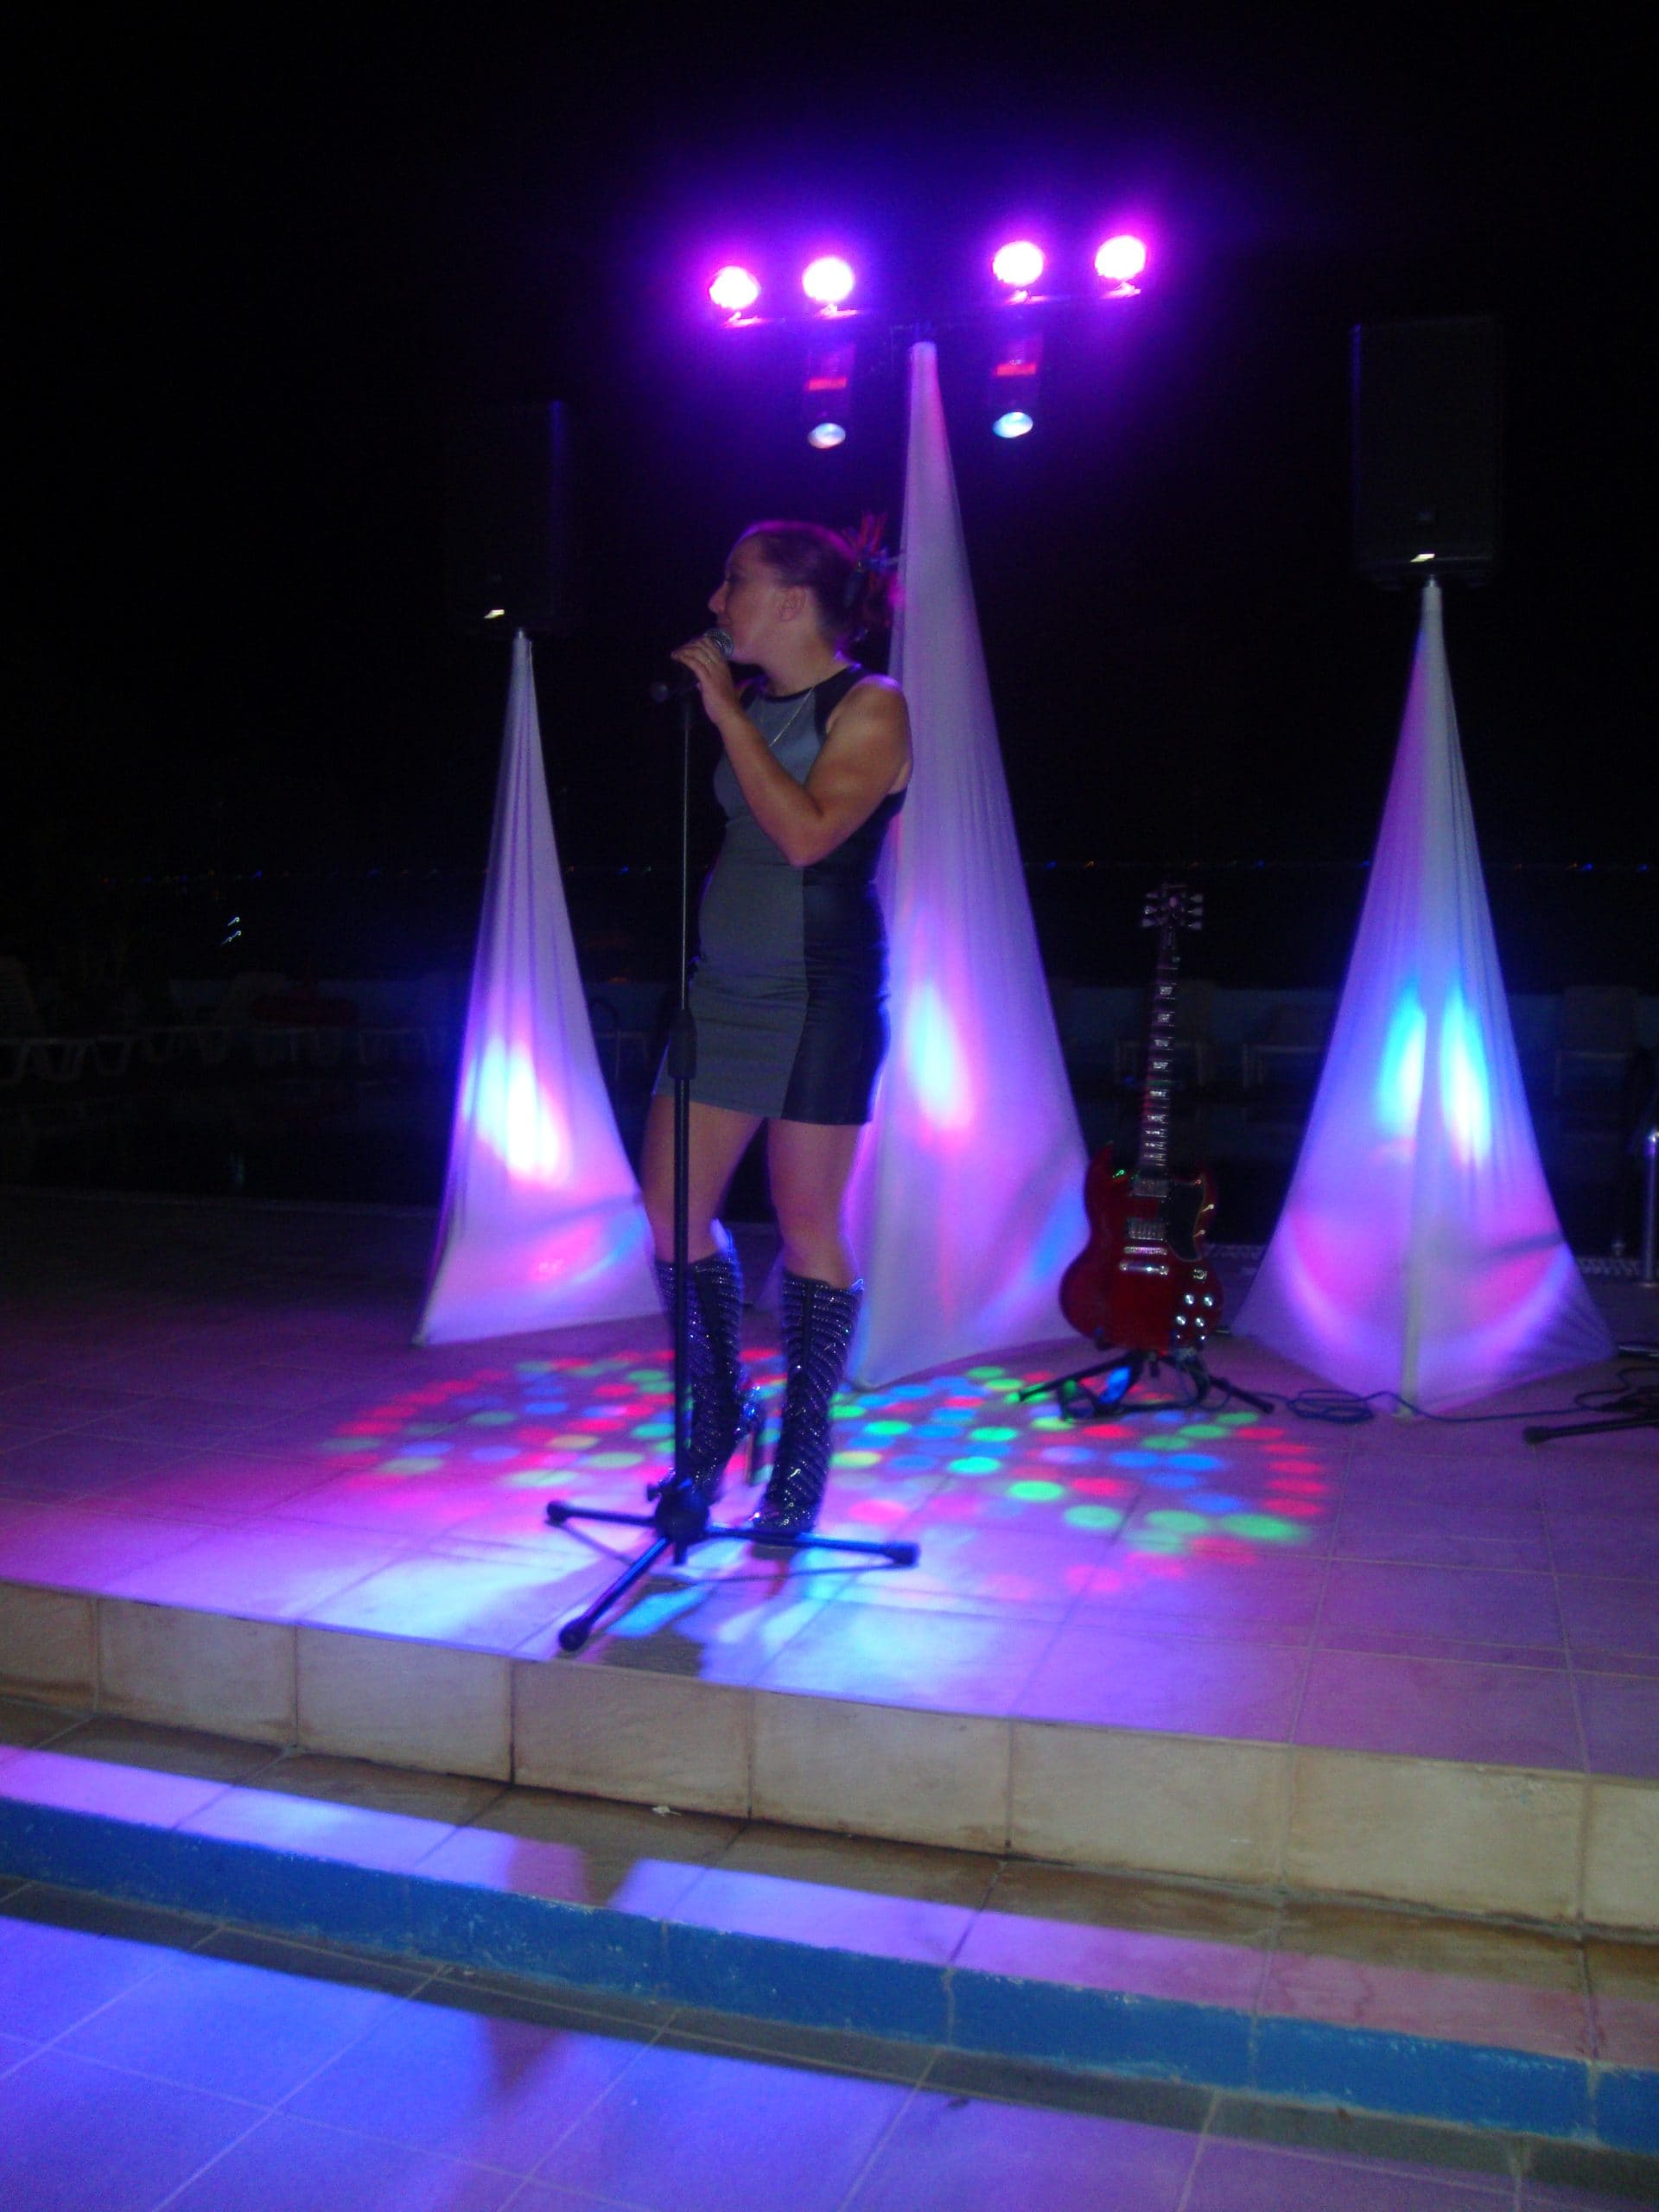 Speakers on stands with covers and uplighters and a large T b-bar with spotlights and effects